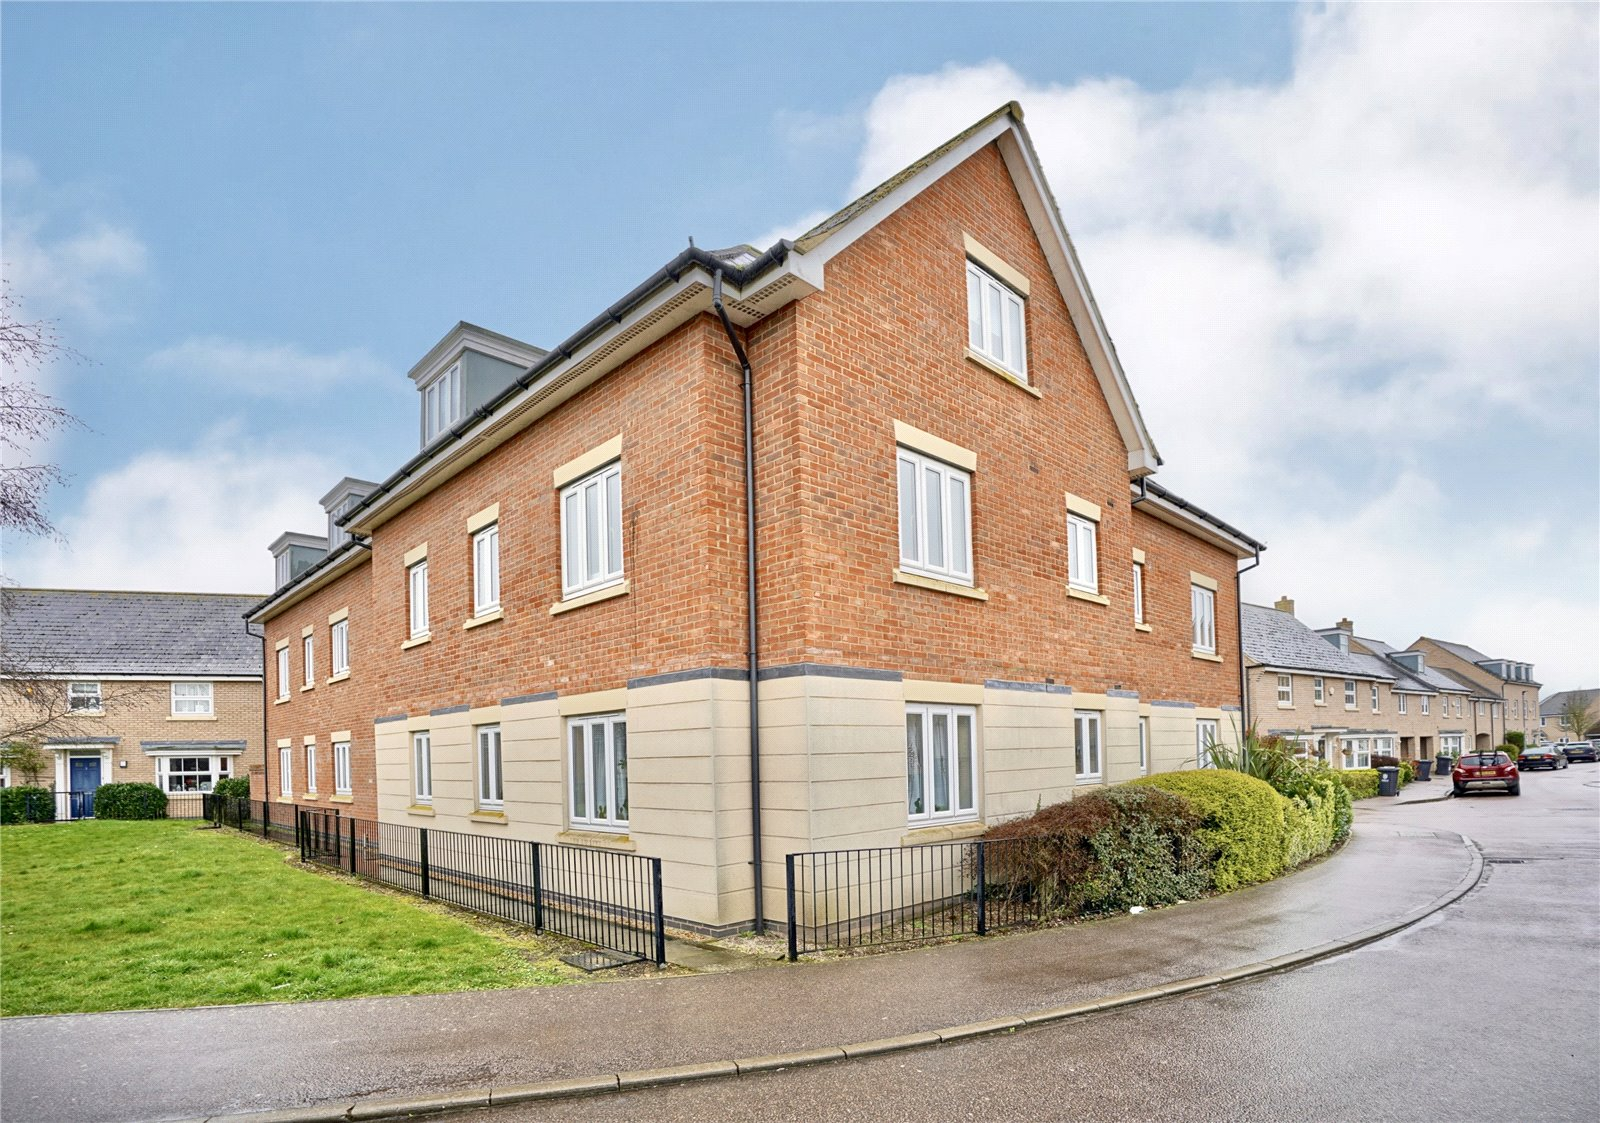 2 bed apartment for sale in Willingham, CB24 5GX - Property Image 1